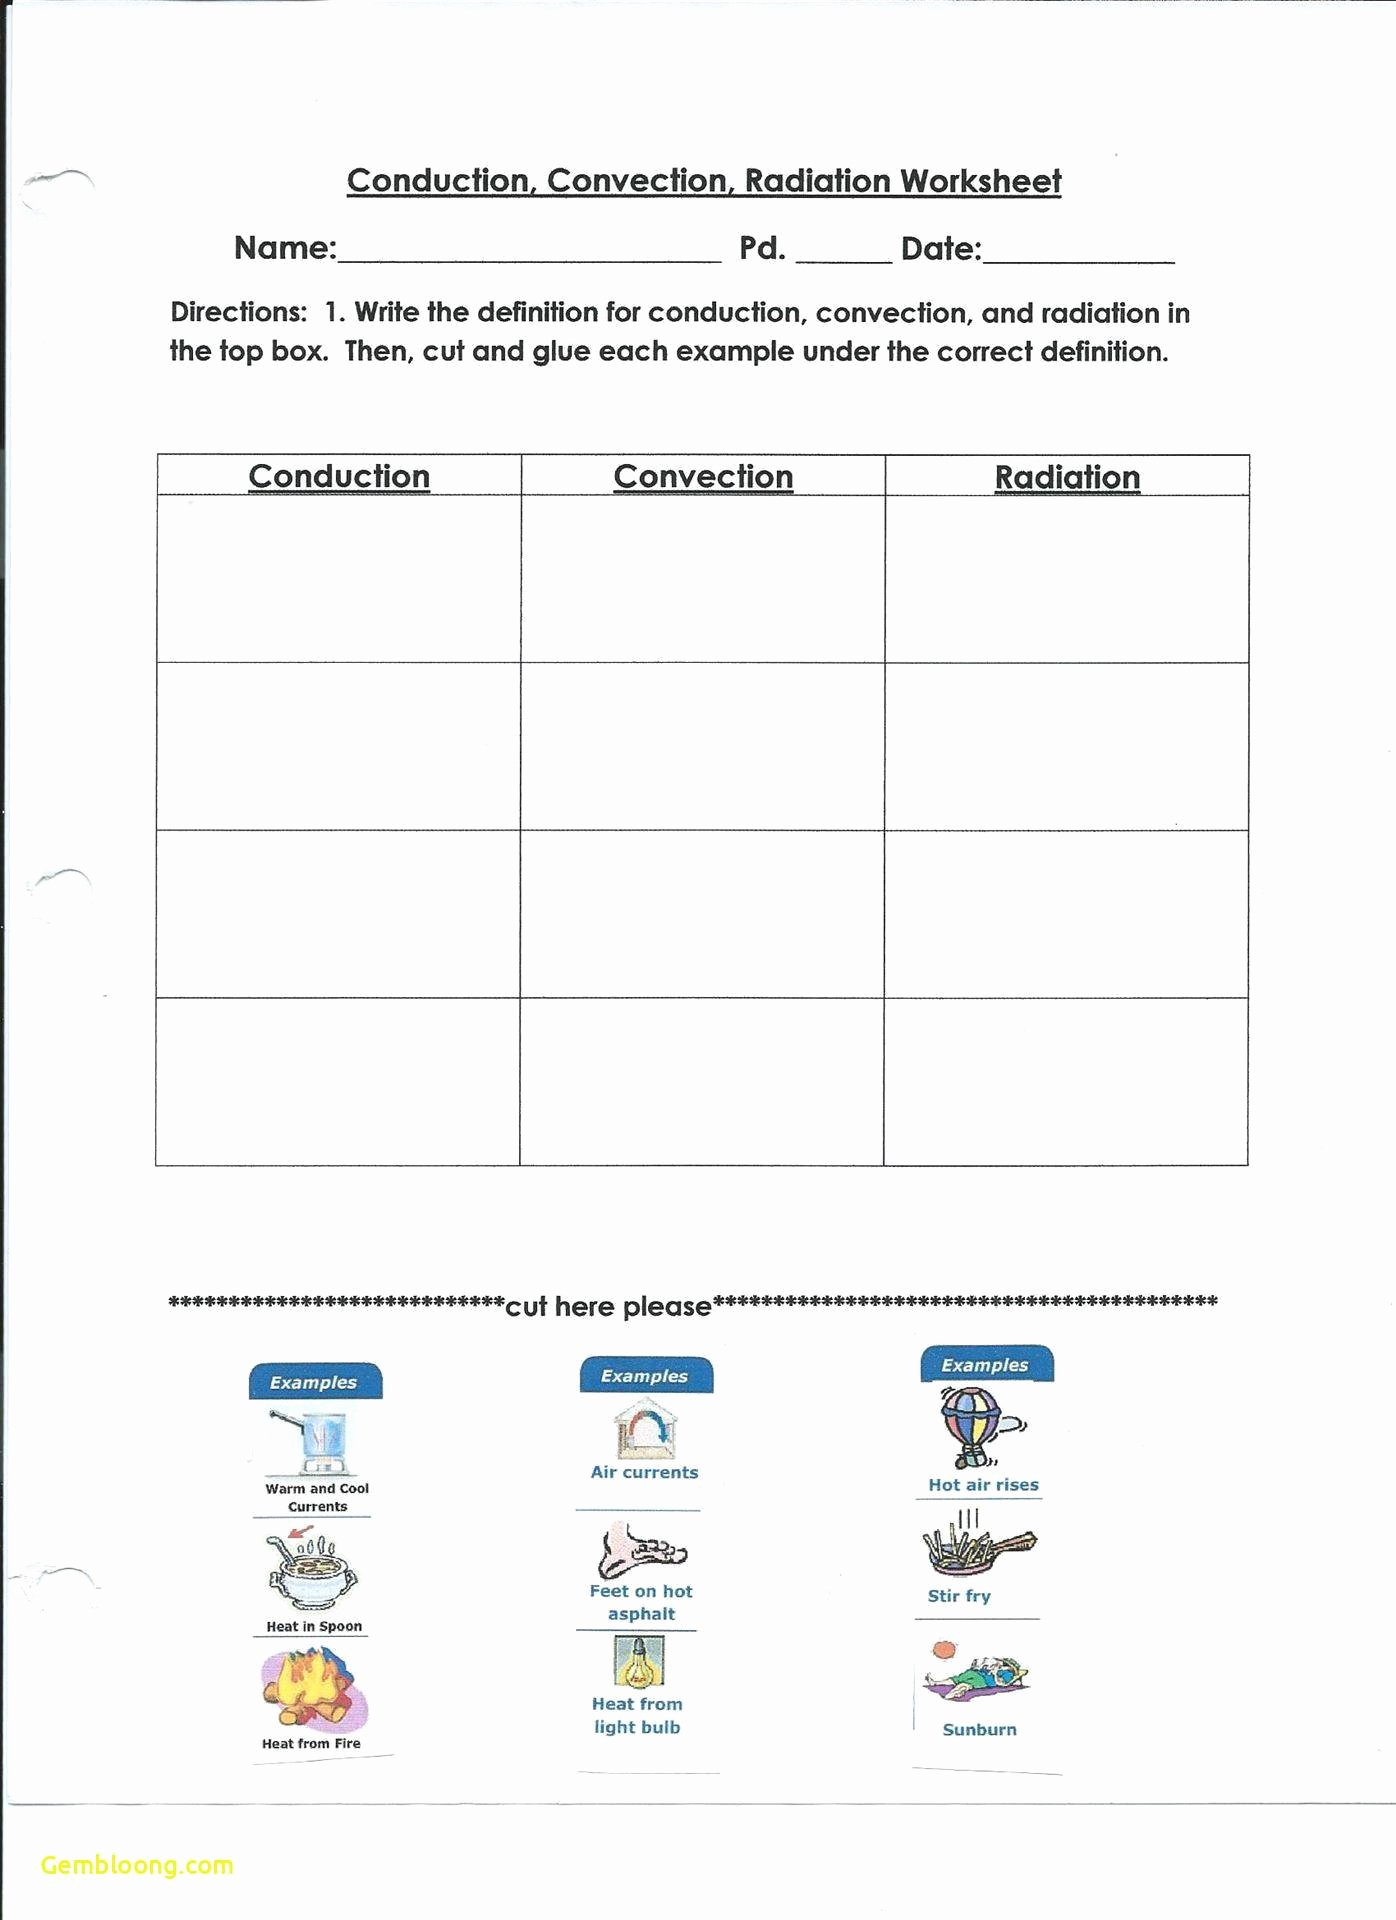 Conduction Convection and Radiation Worksheet Fresh Energy Worksheet 2 Conduction Convection and Radiation